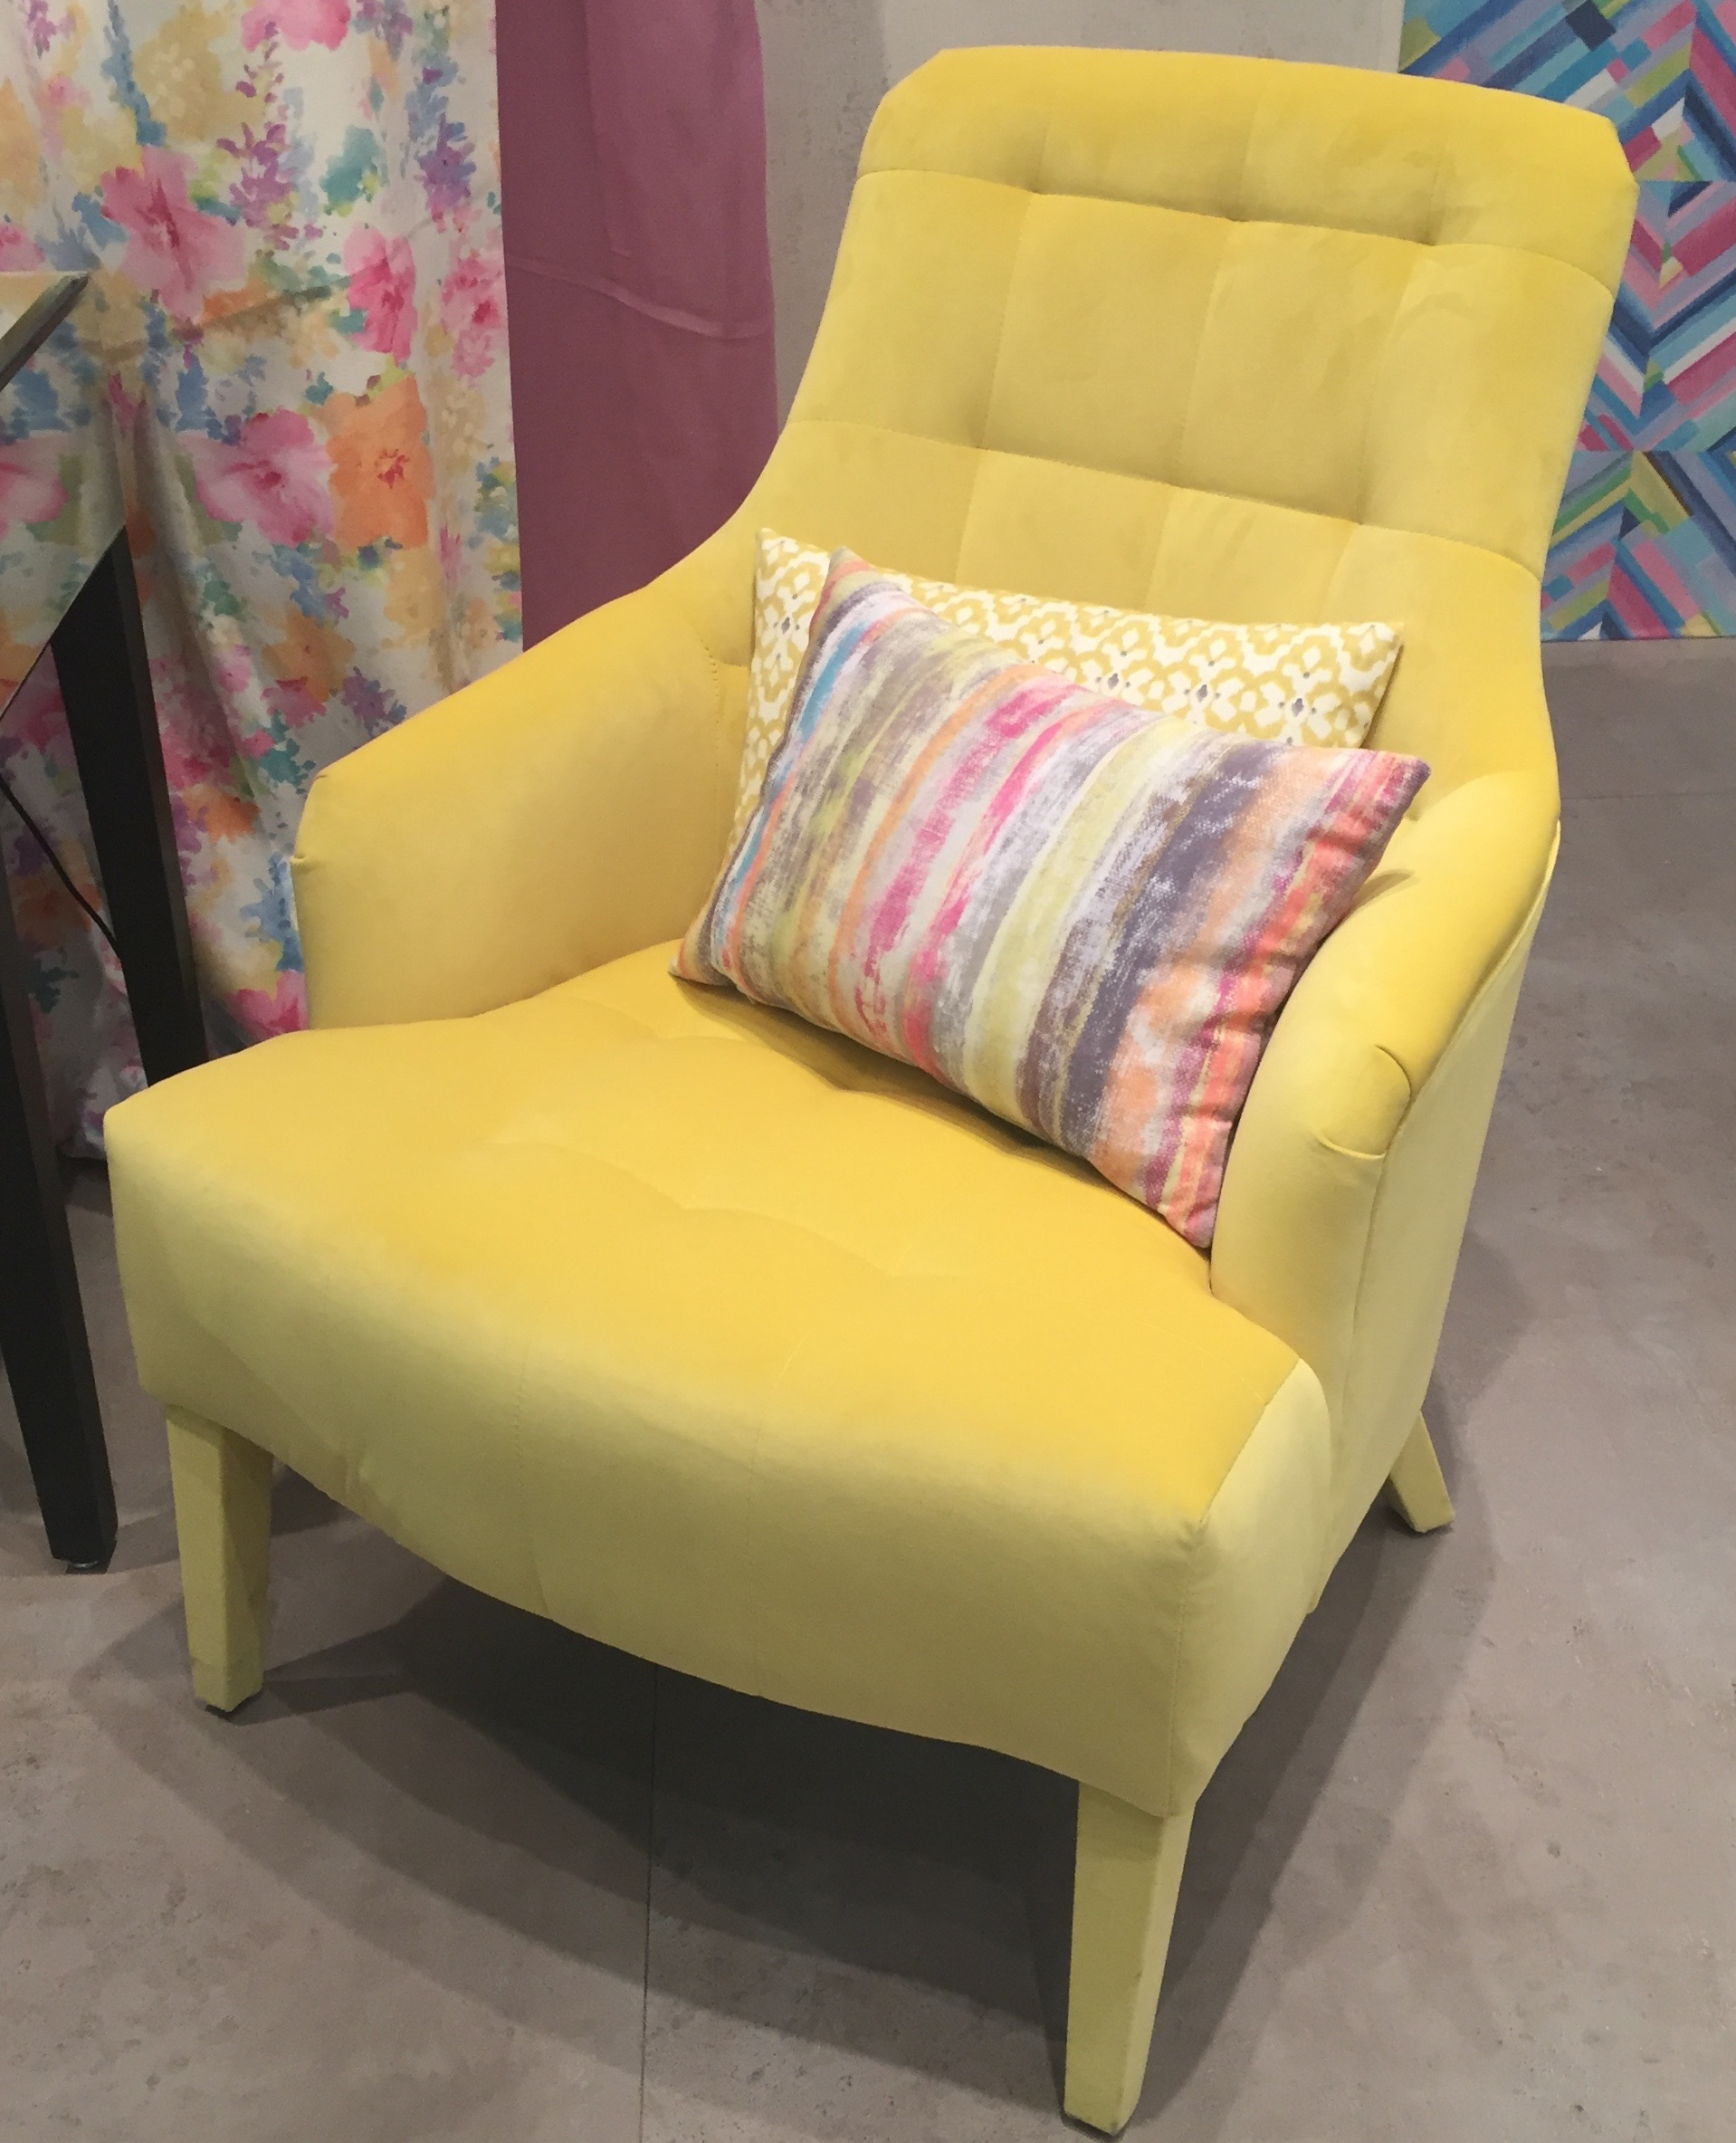 Yellow velvet upholstery - even on the legs.  Castilla Textil of Spain.